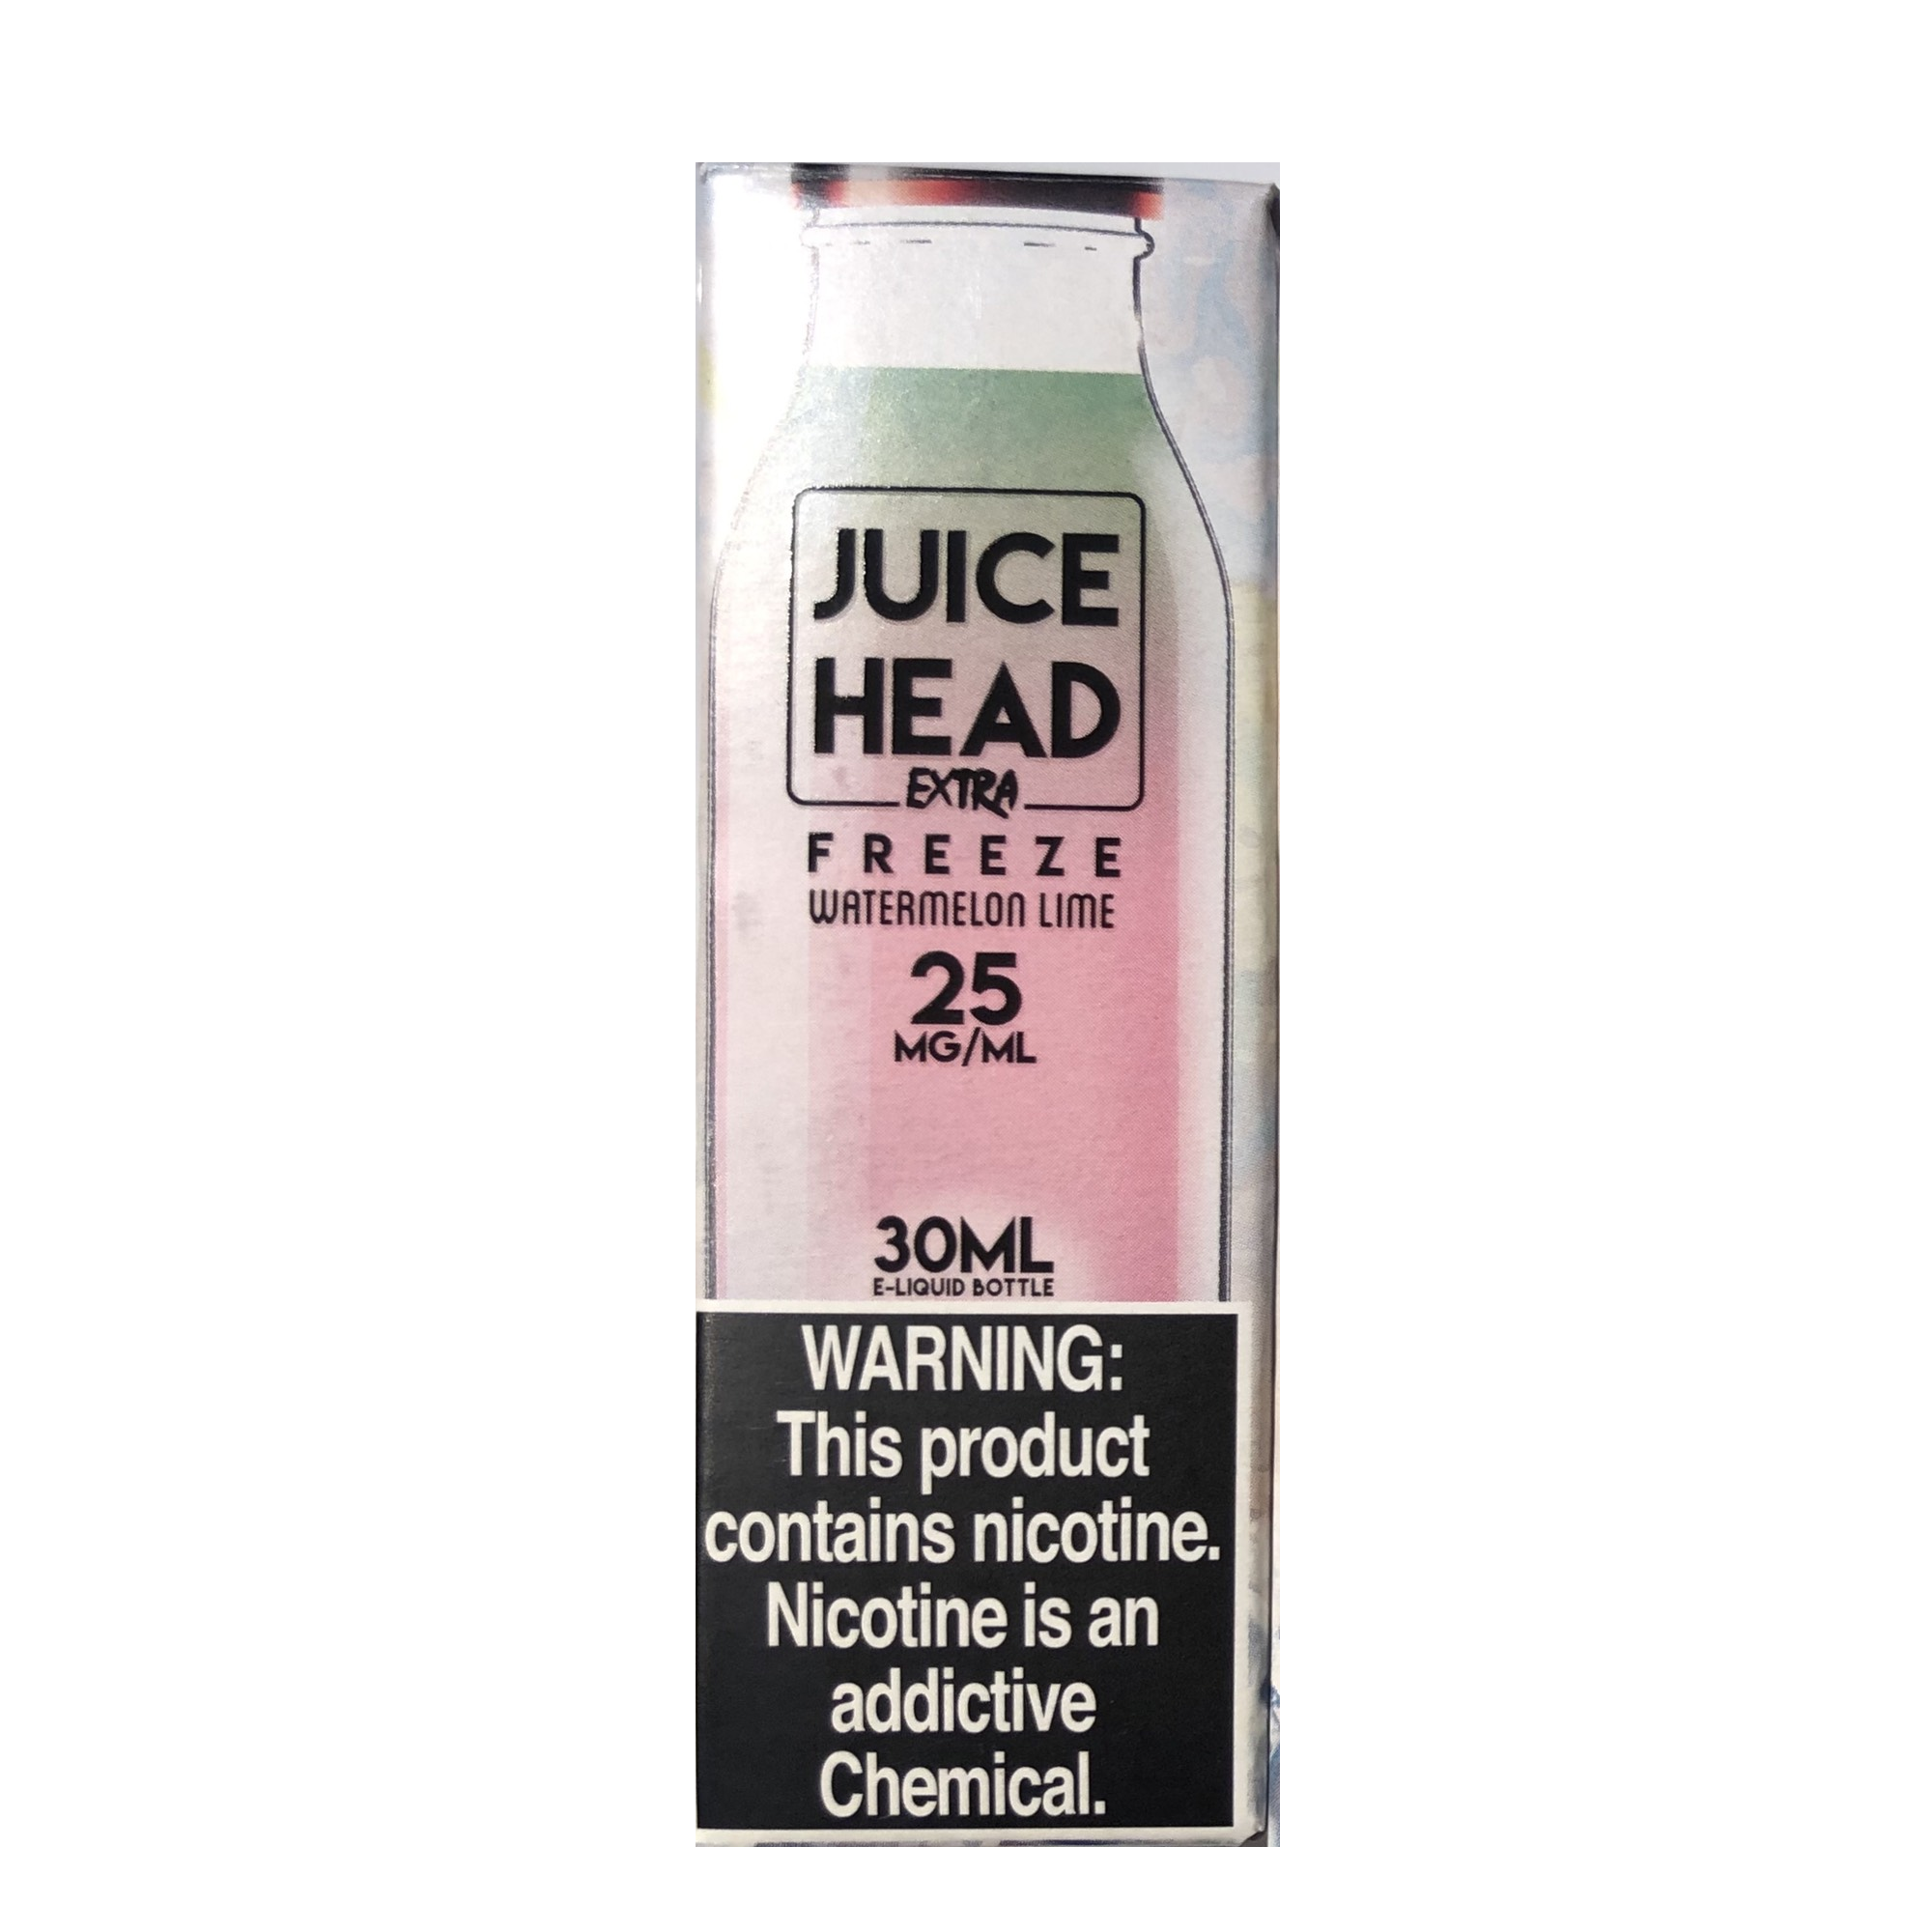 JUICE HEAD EXTRA FREEZE SALT WATERMELON LIME 30ML